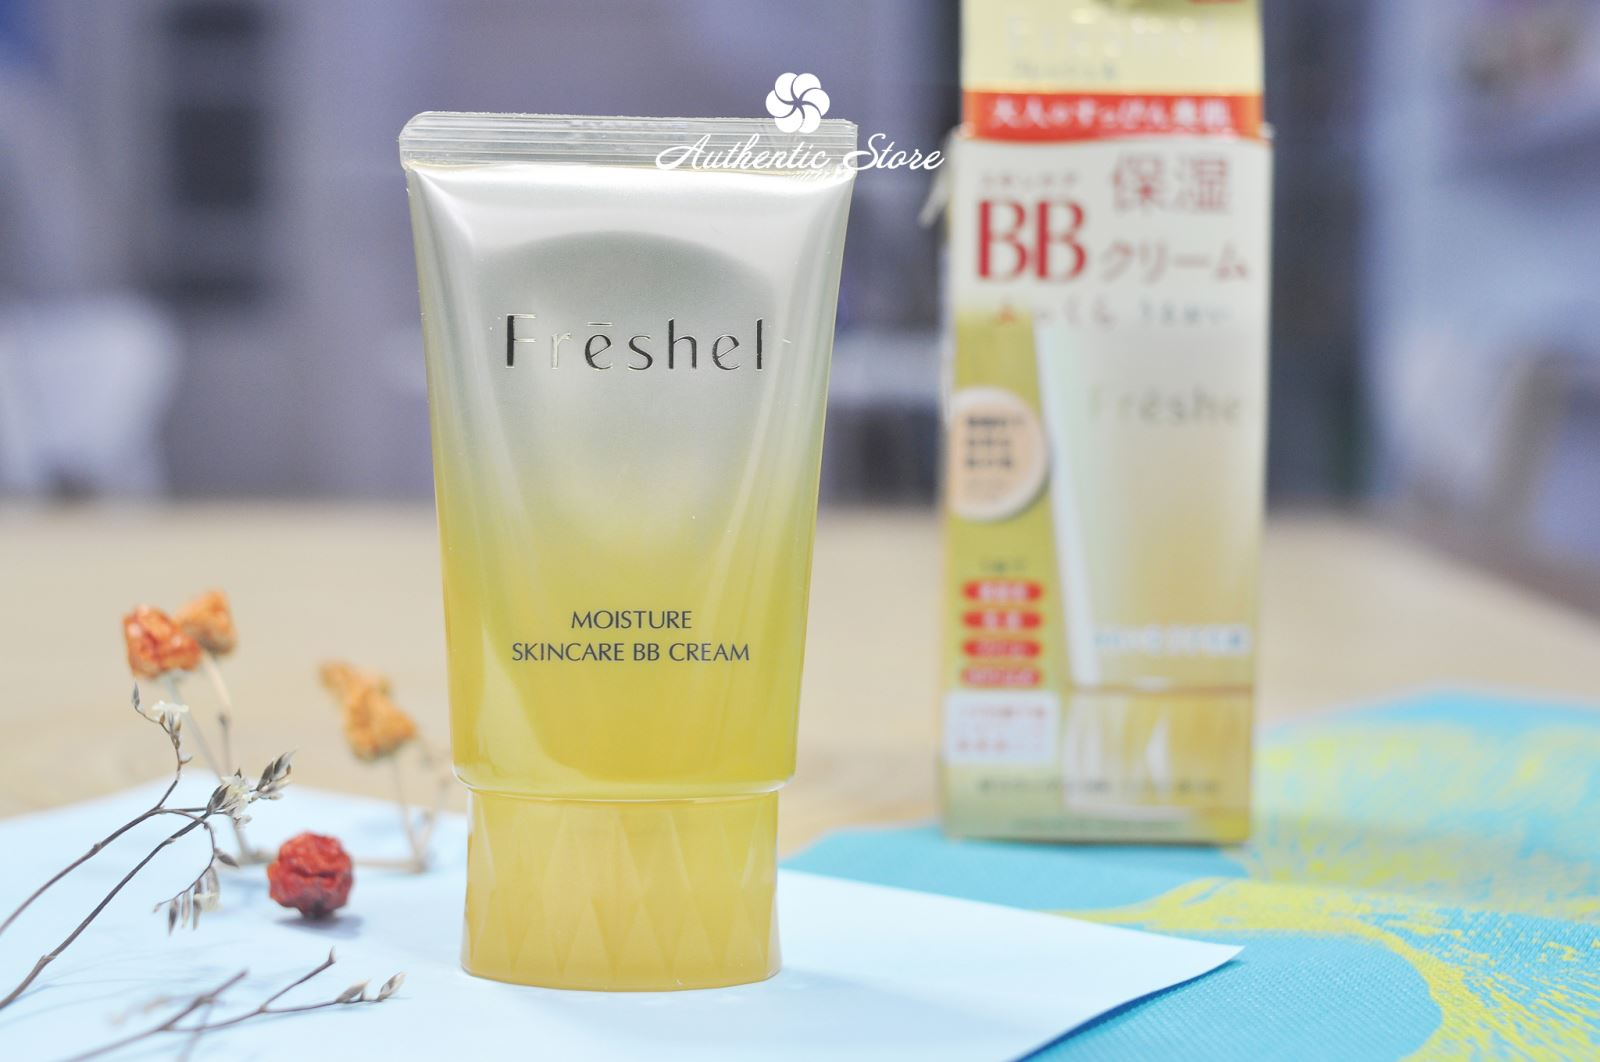 bb cream kanebo freshel